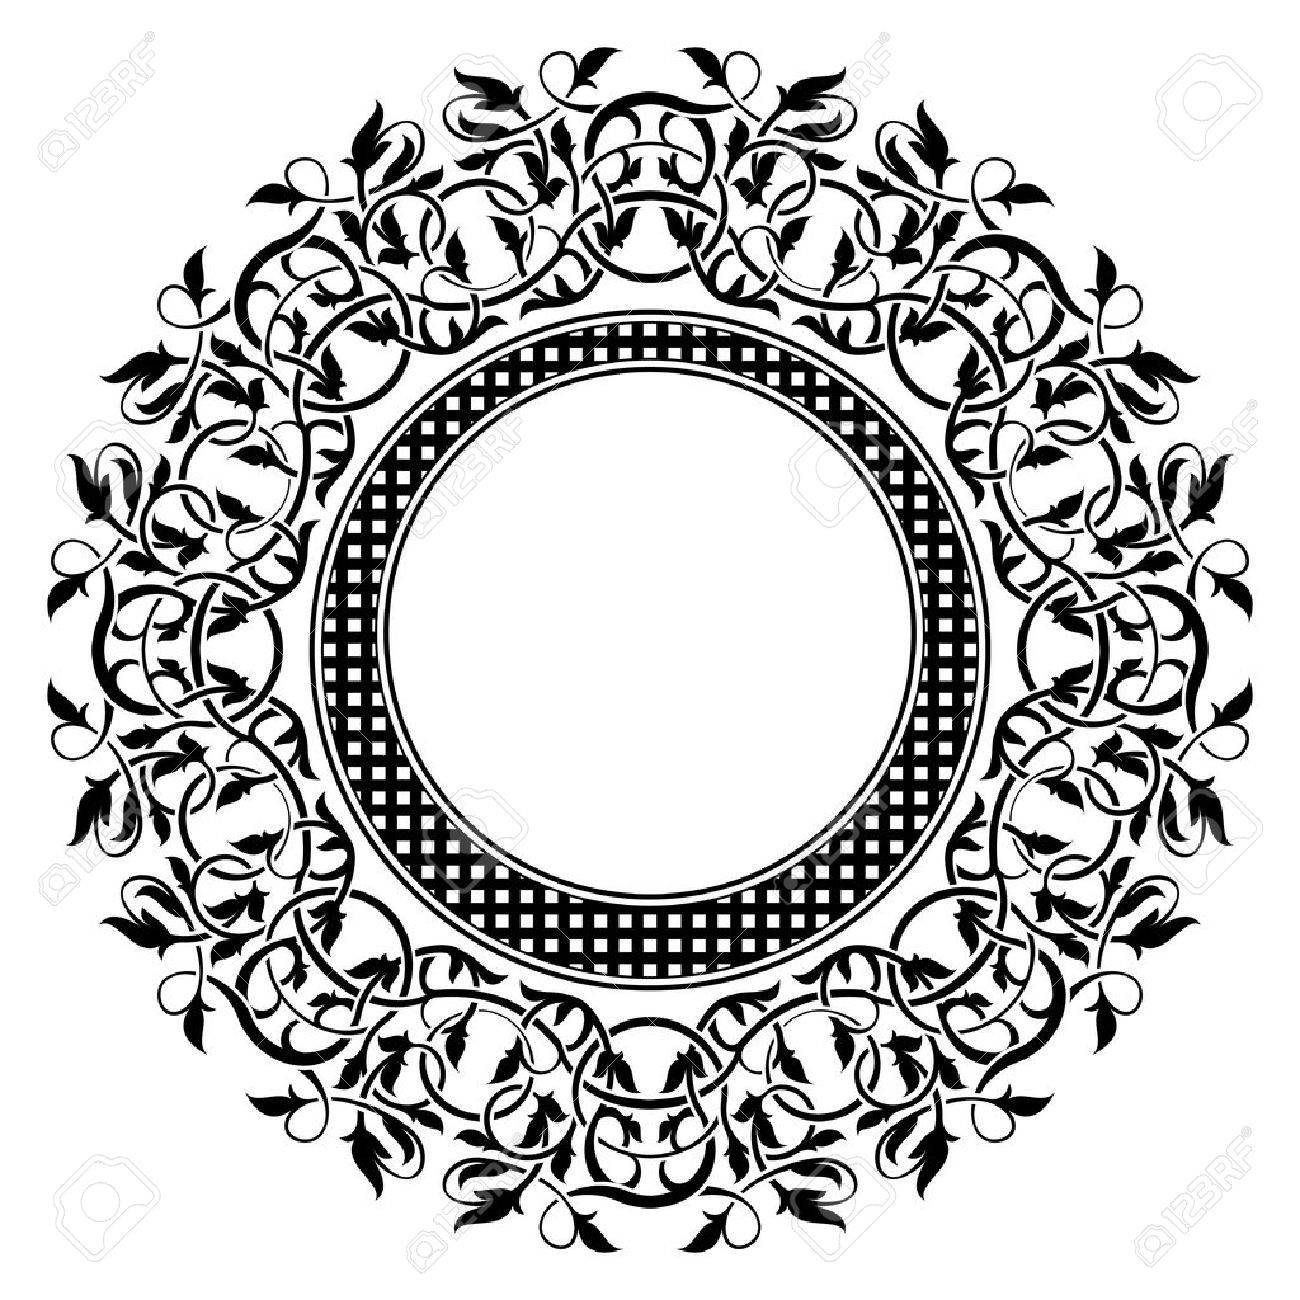 Black frame with ornamental border Stock Vector - 12365001